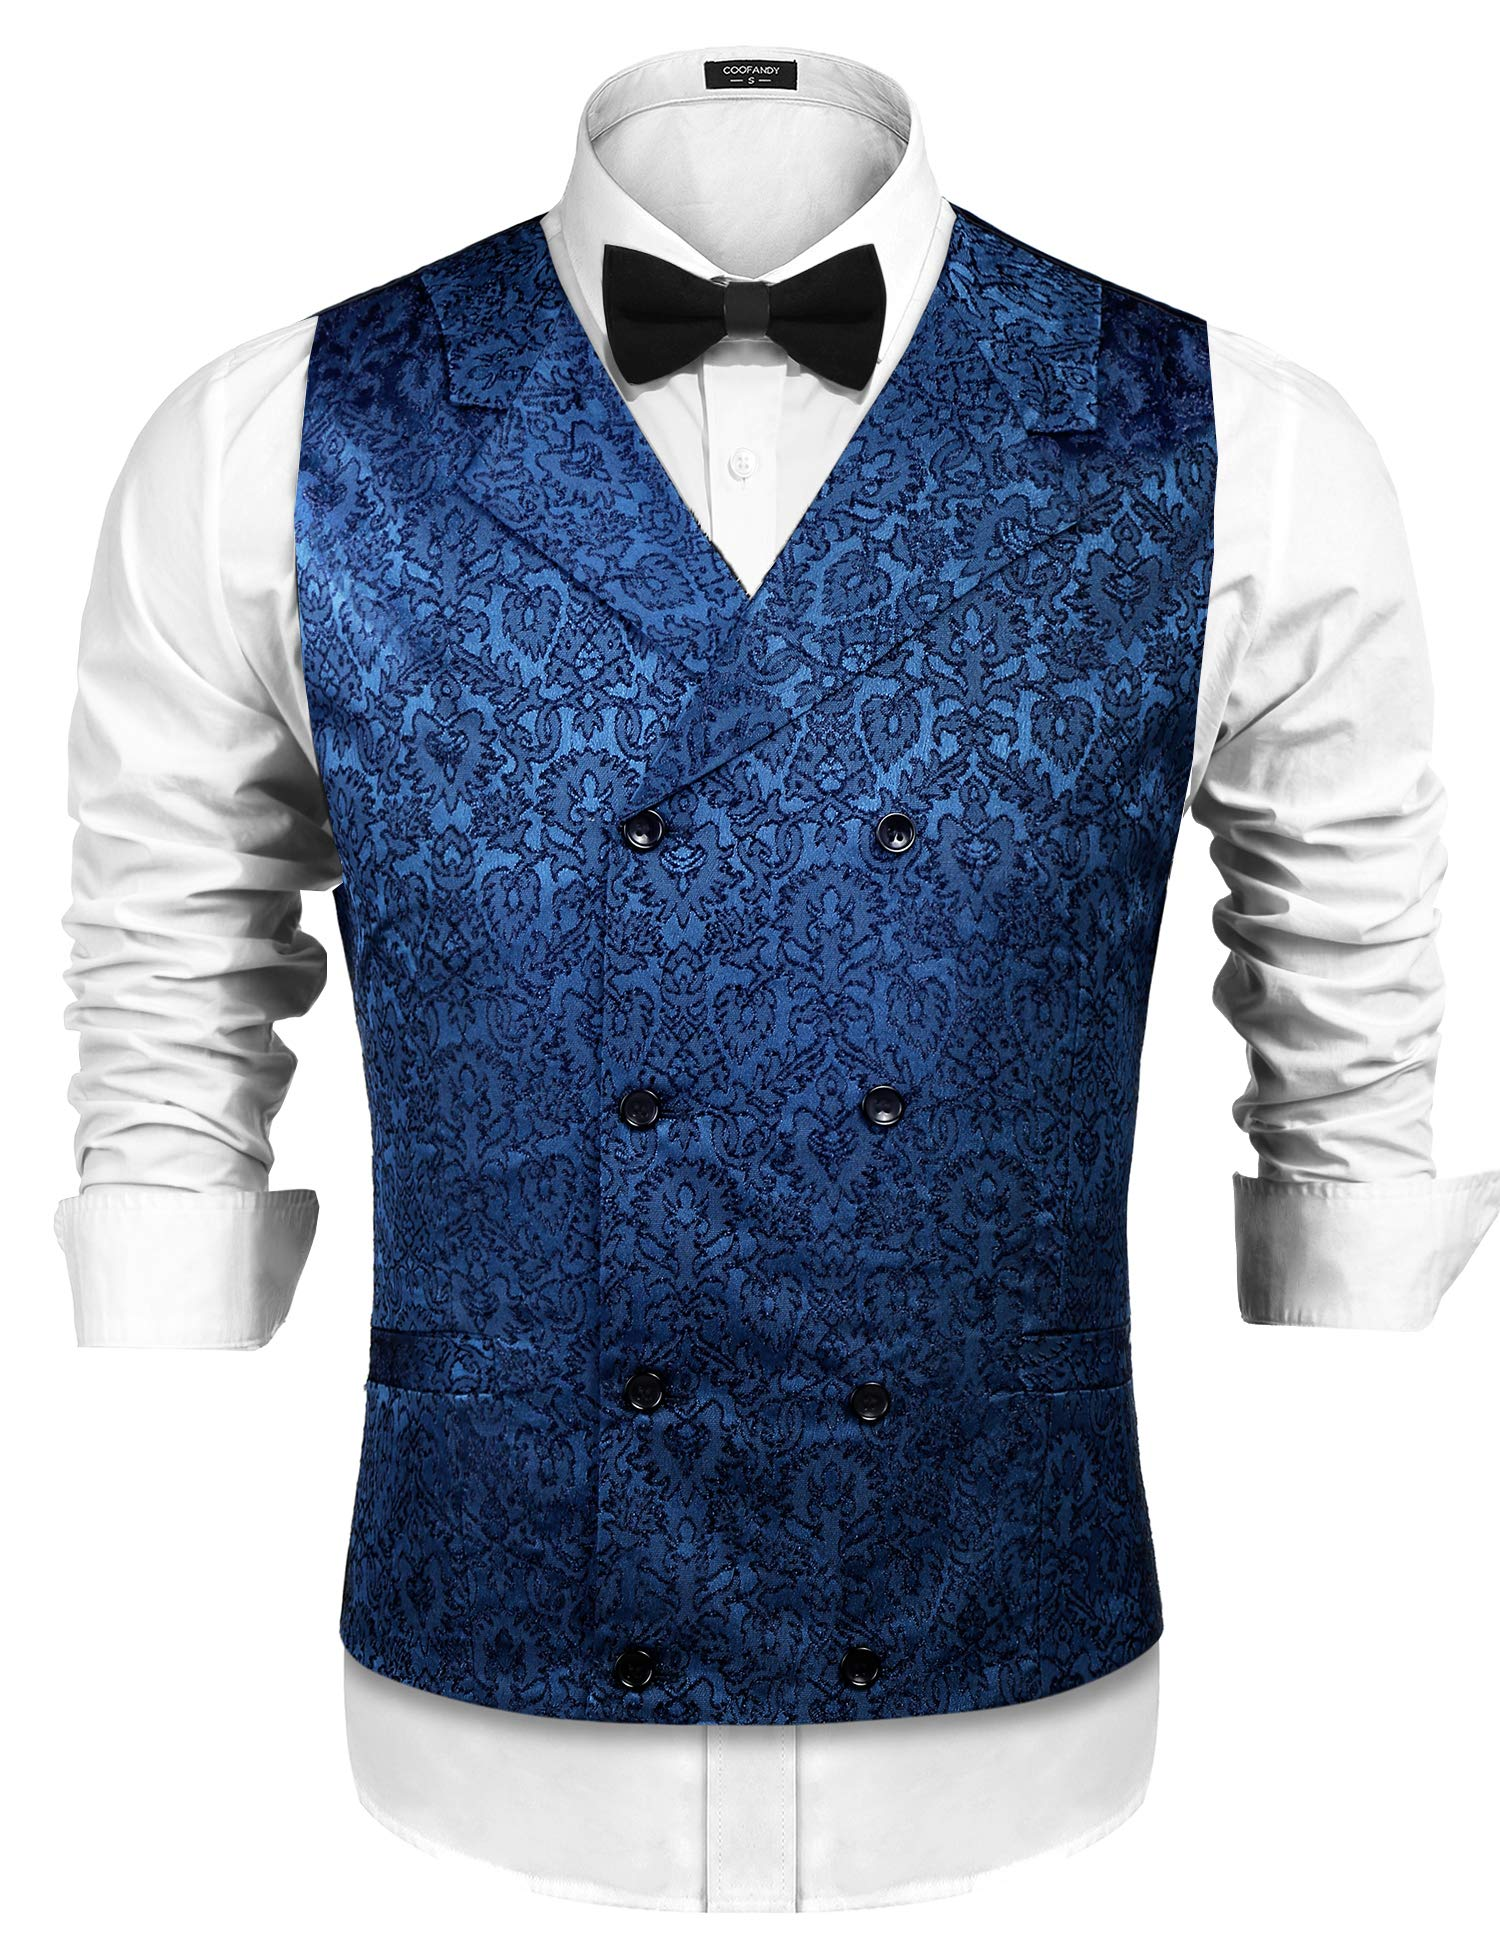 COOFANDY Mens Victorian Vest Steampunk Double Breasted Suit Vest Slim Fit Brocade Paisley Floral Waistcoat 4